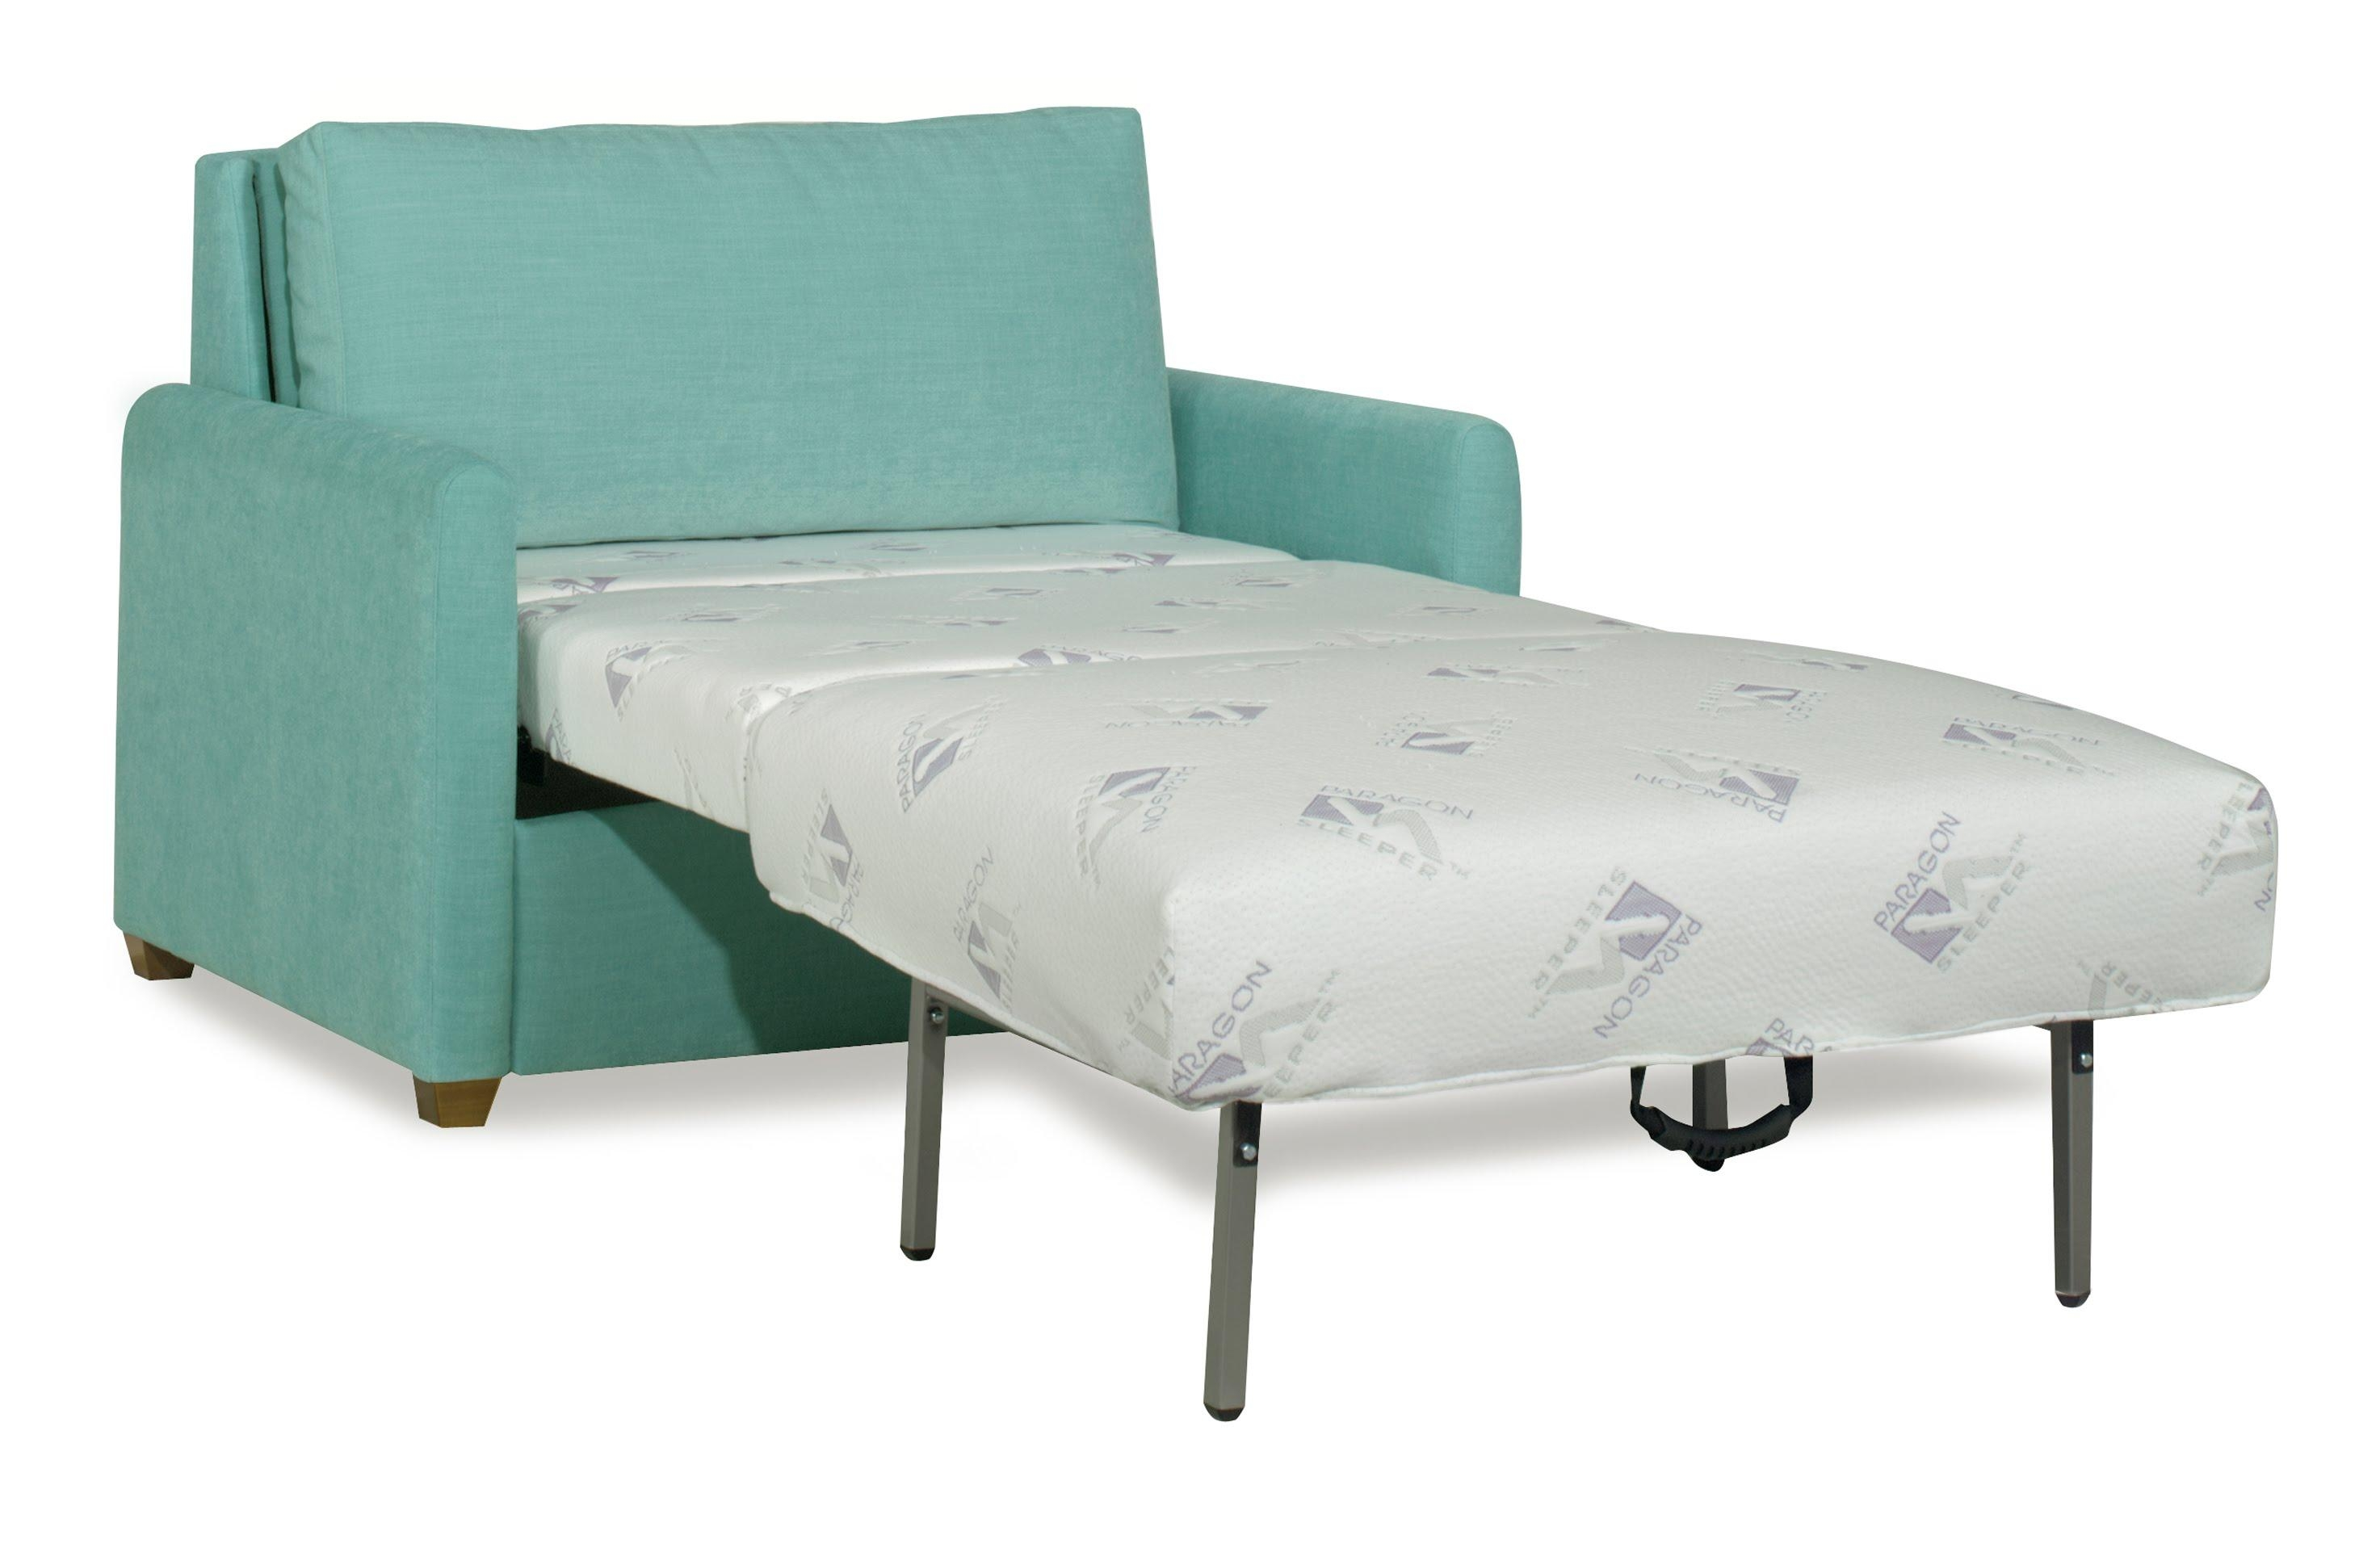 ikea single sleeper sofa mart labor day sale 2017 20 inspirations twin chairs ideas